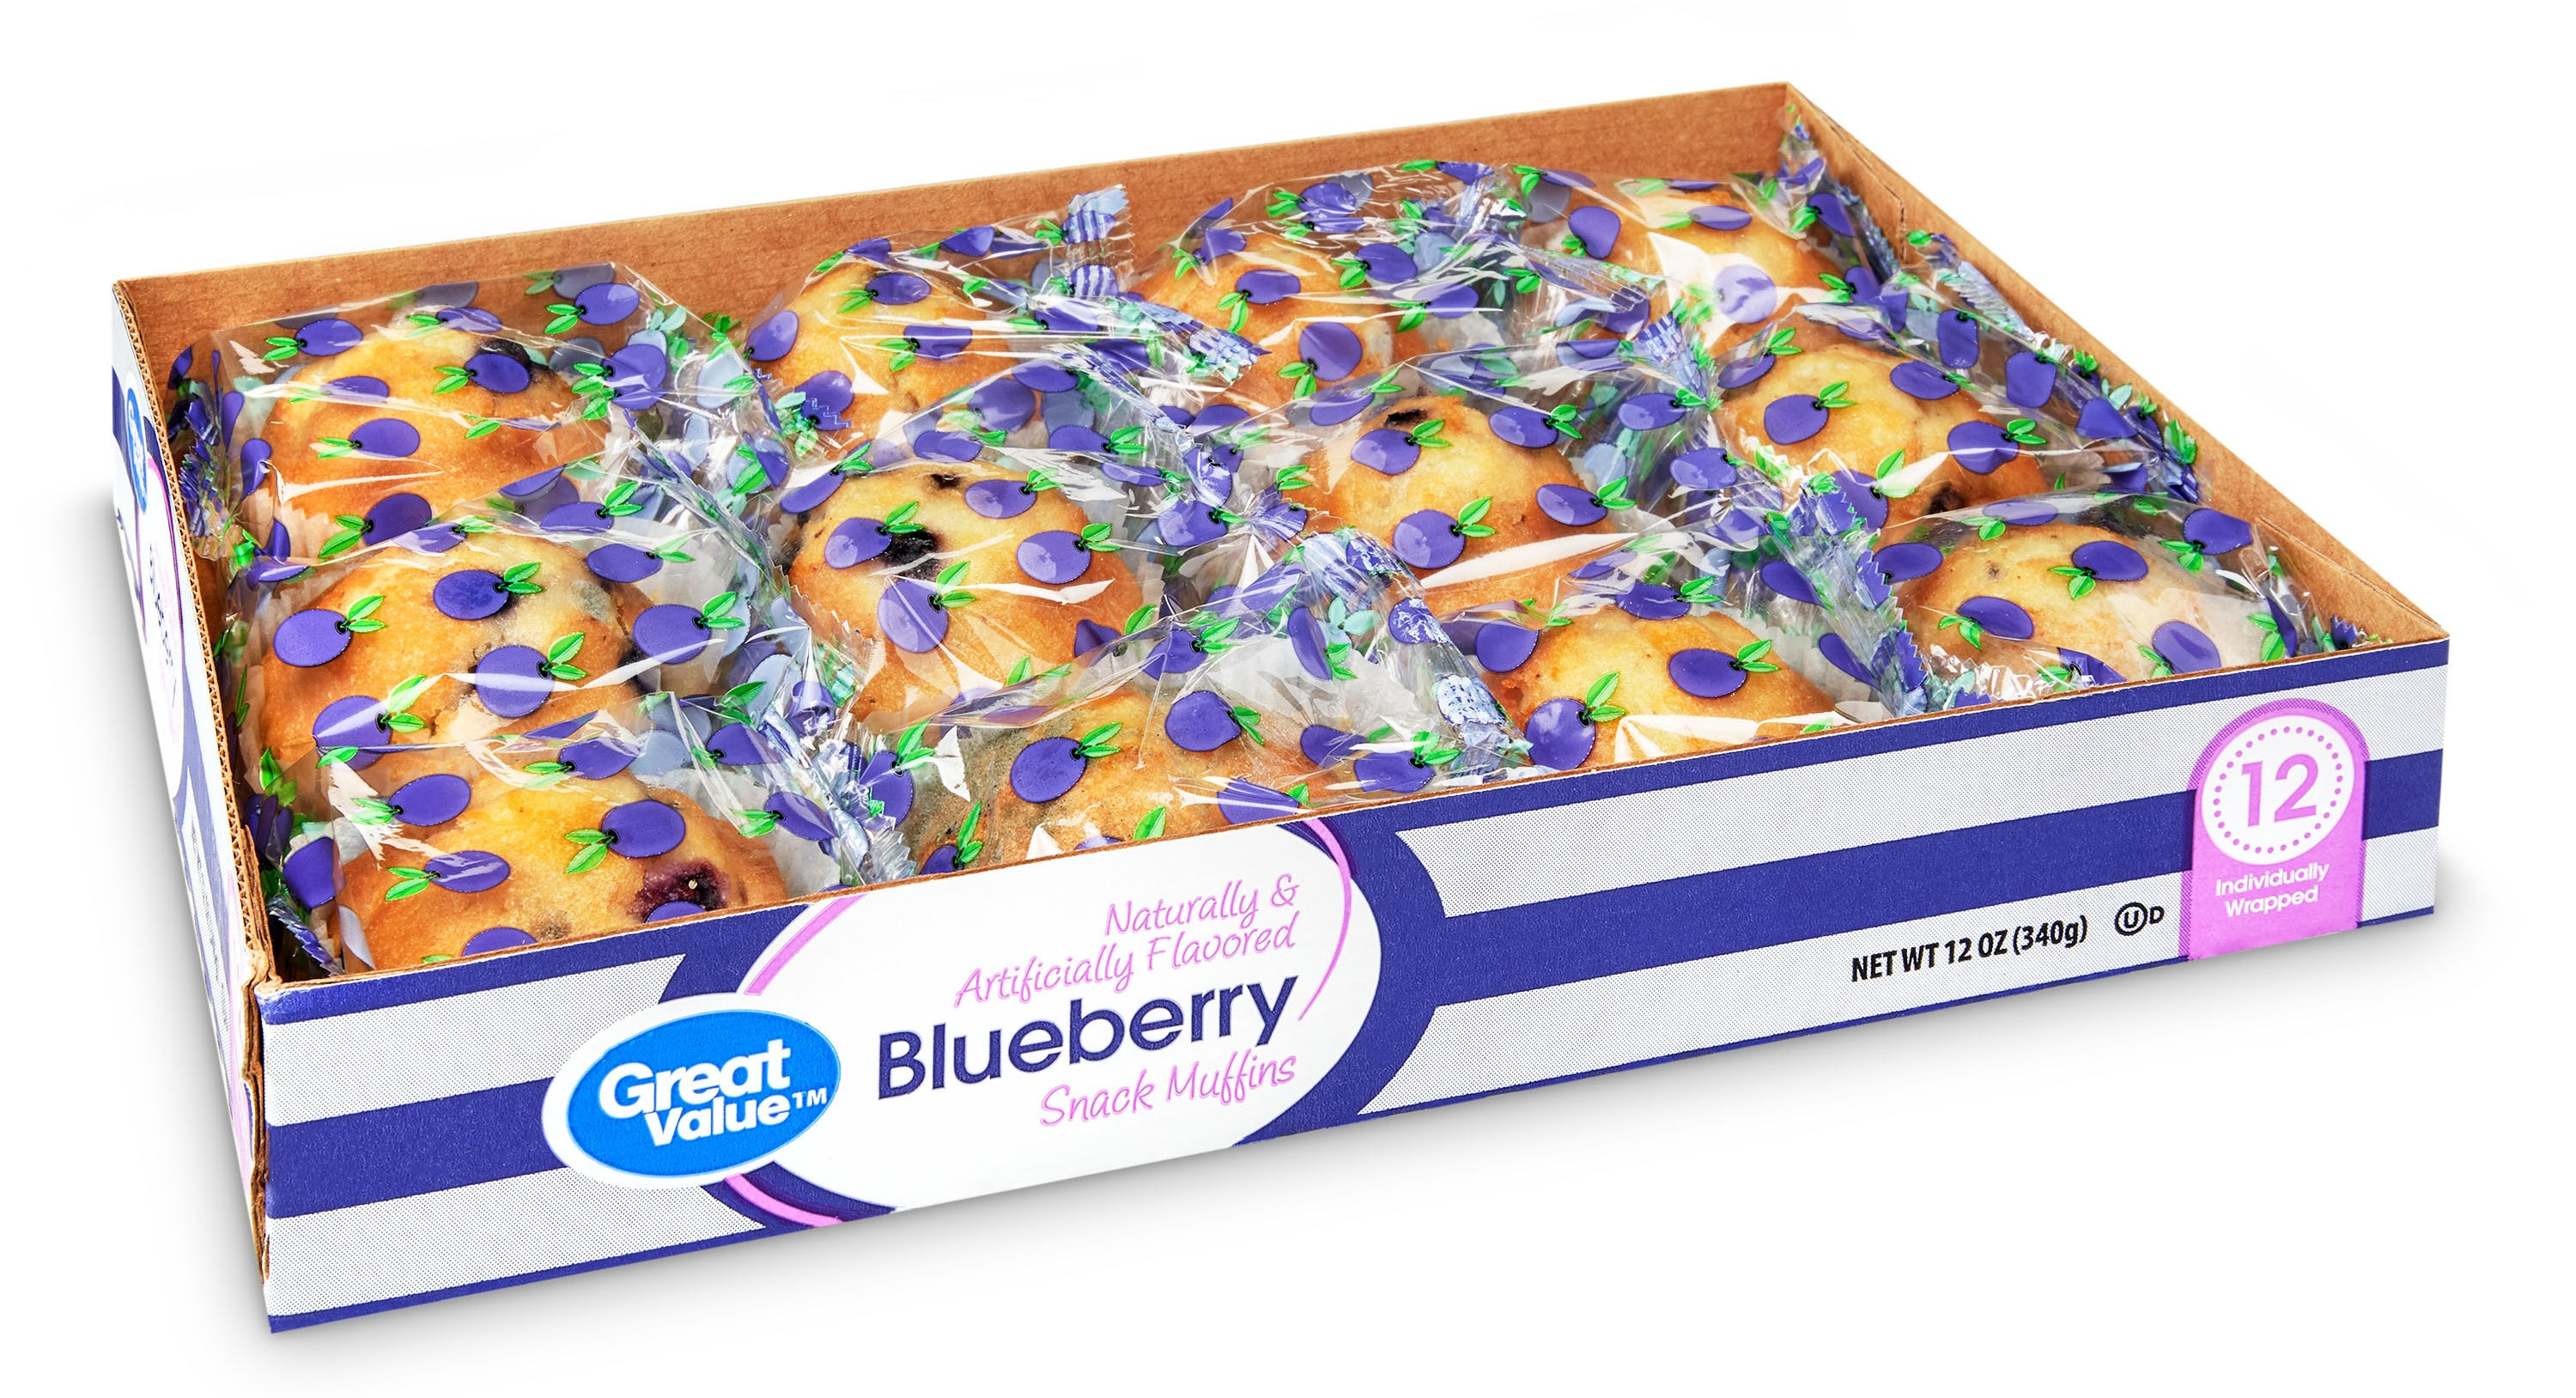 Greater Value 12 pack of individually wrapped muffins